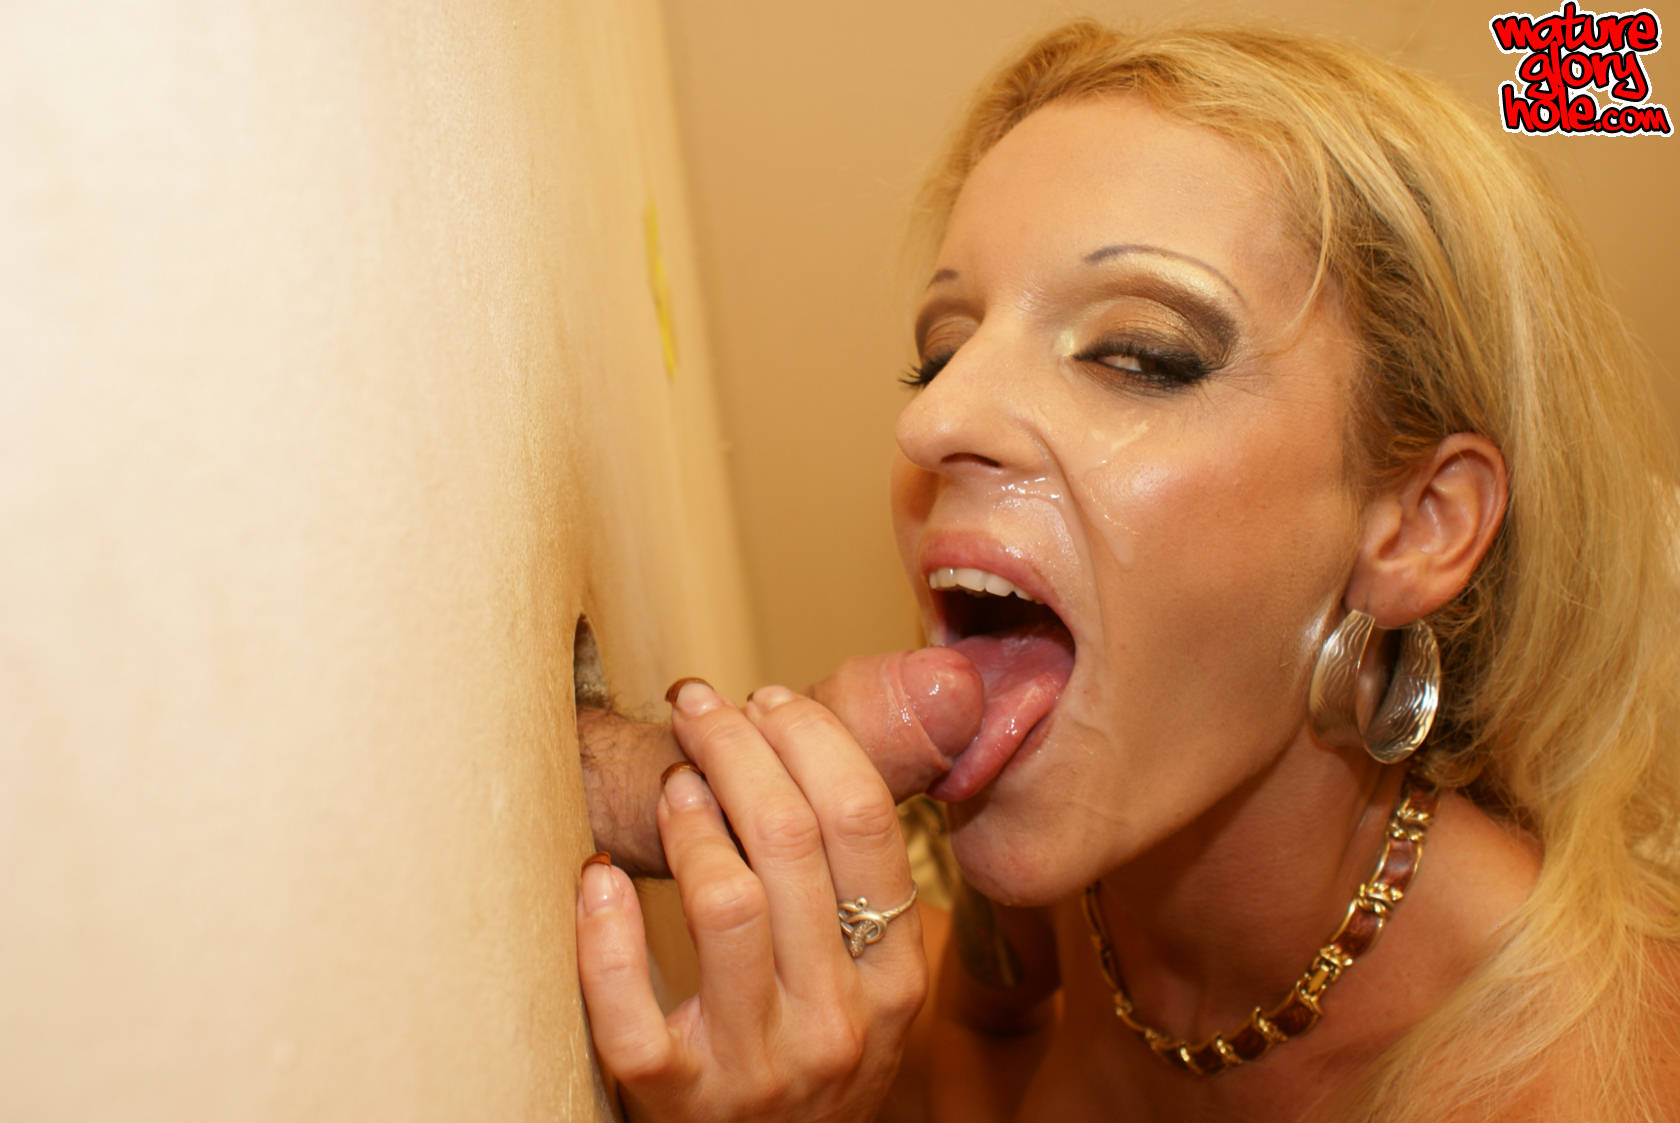 Hot Sucking Through The Gloryhole